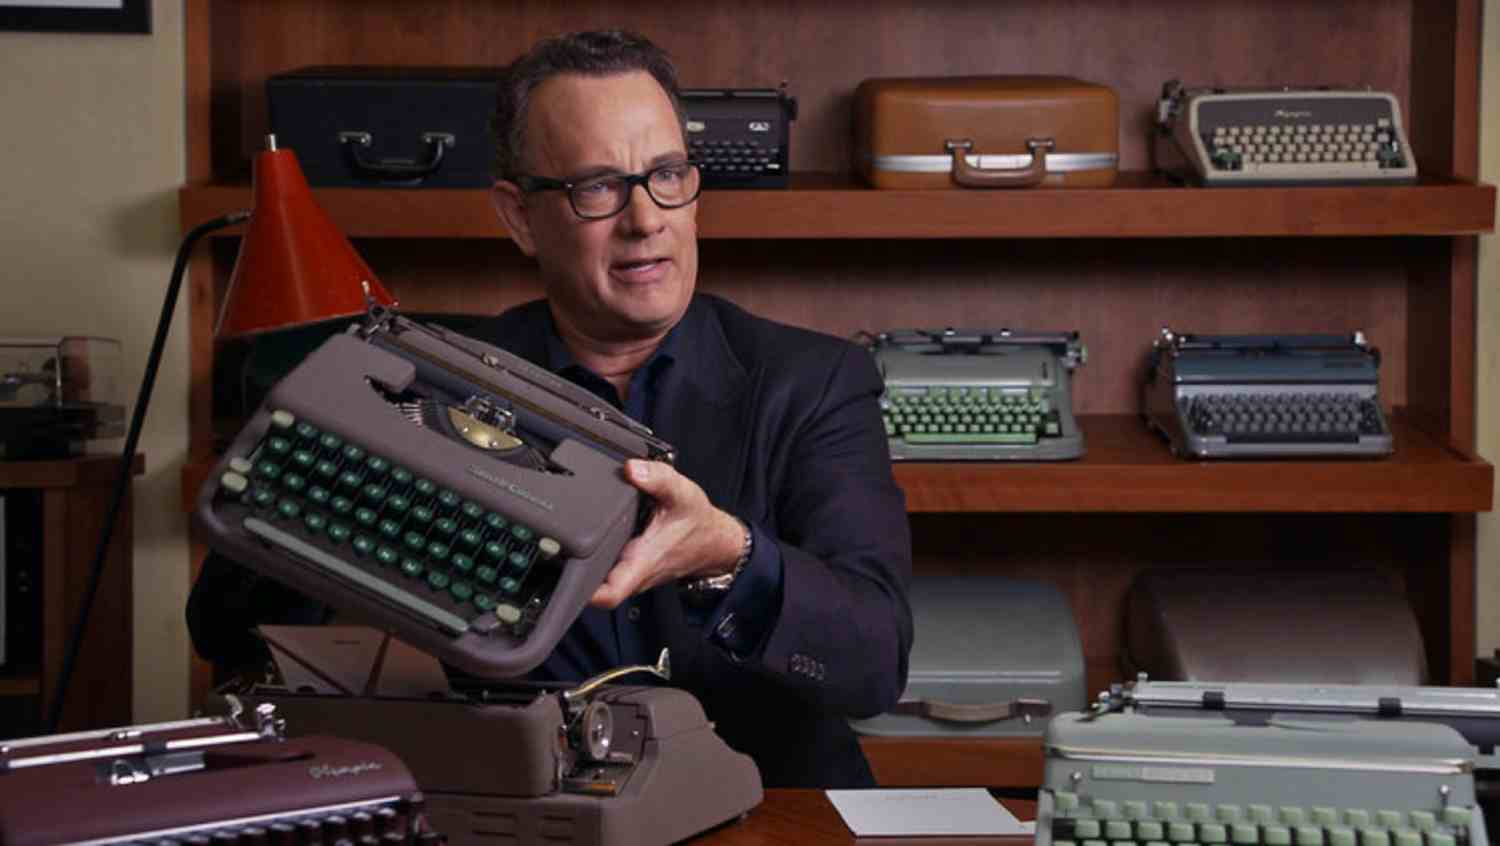 Tom Hanks holds up a typewriter from his collection.